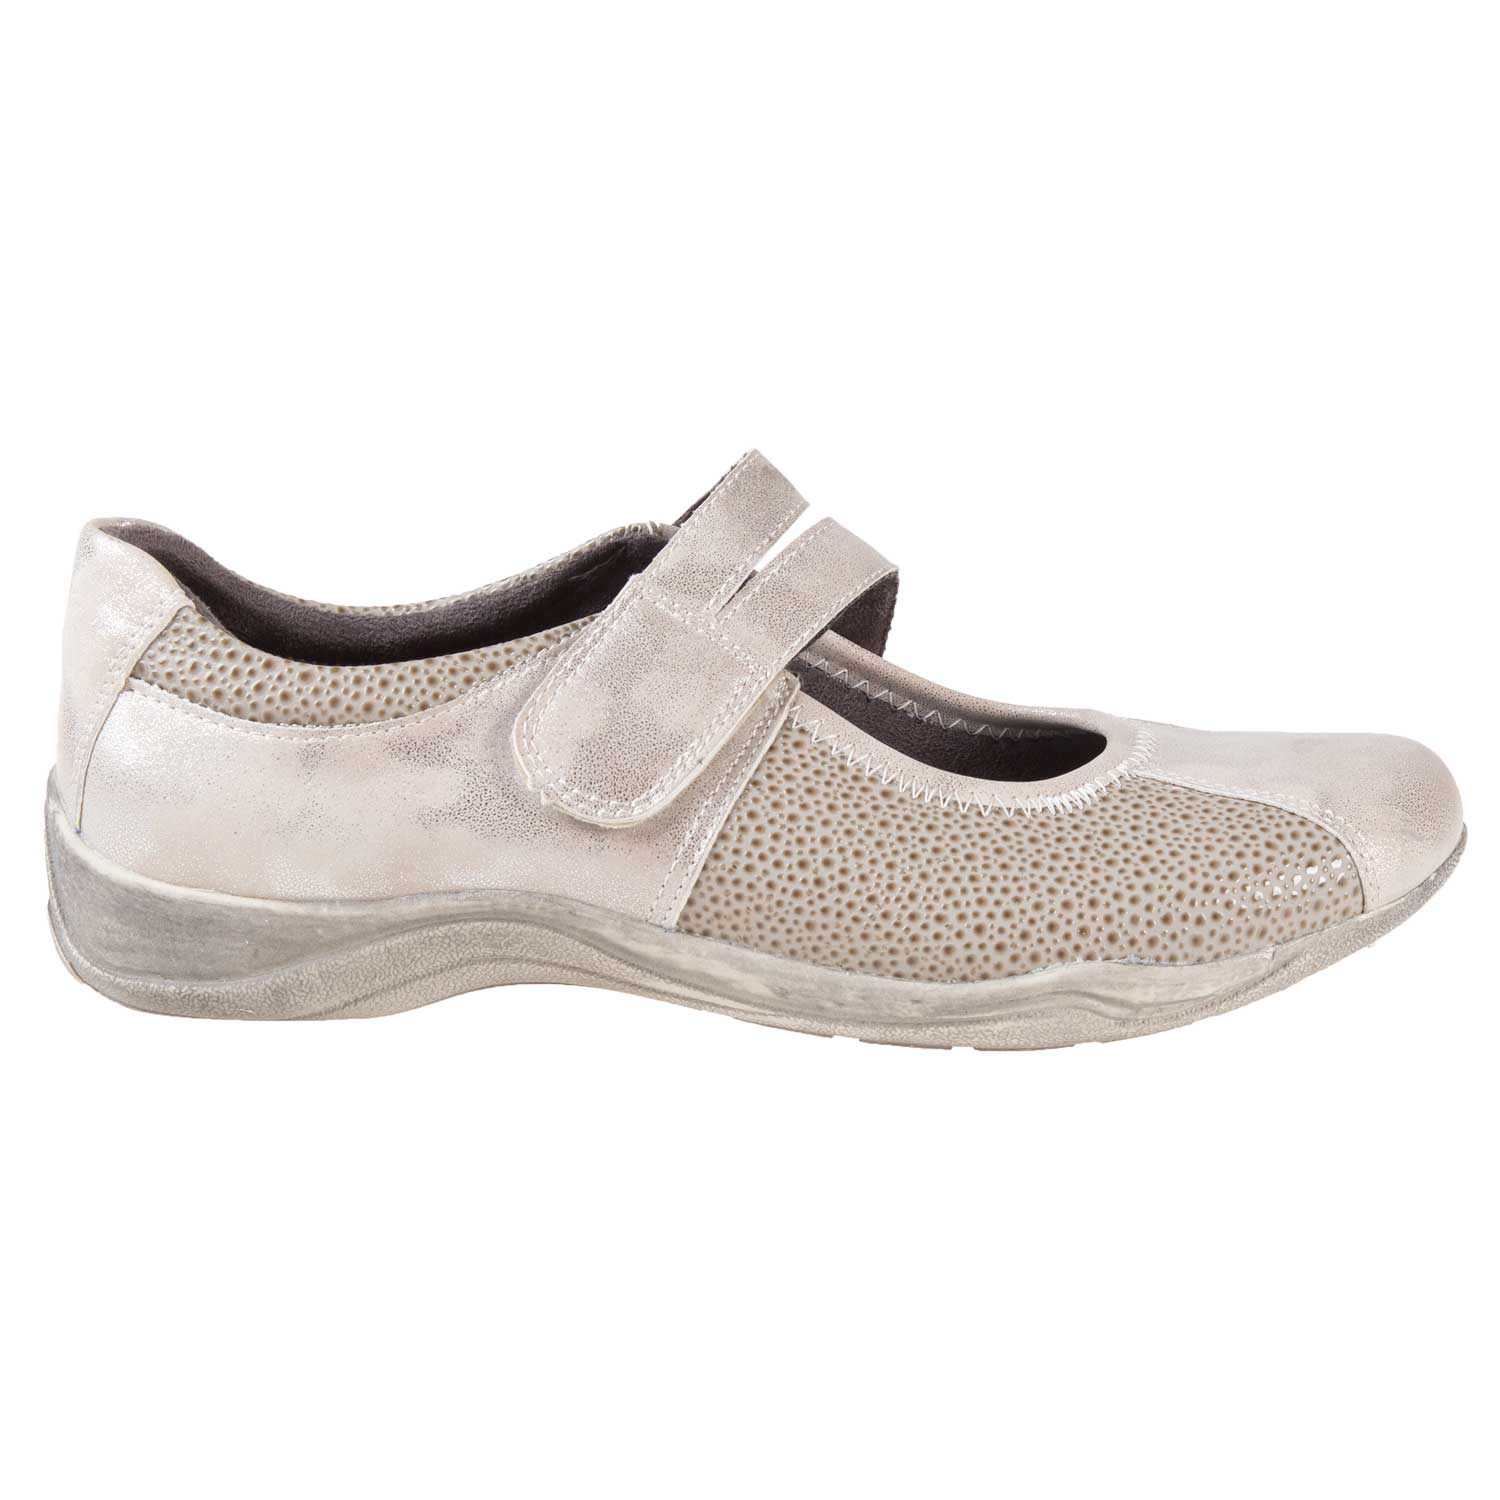 Women's round toe slip-on sports shoes with velcro closure, size 5